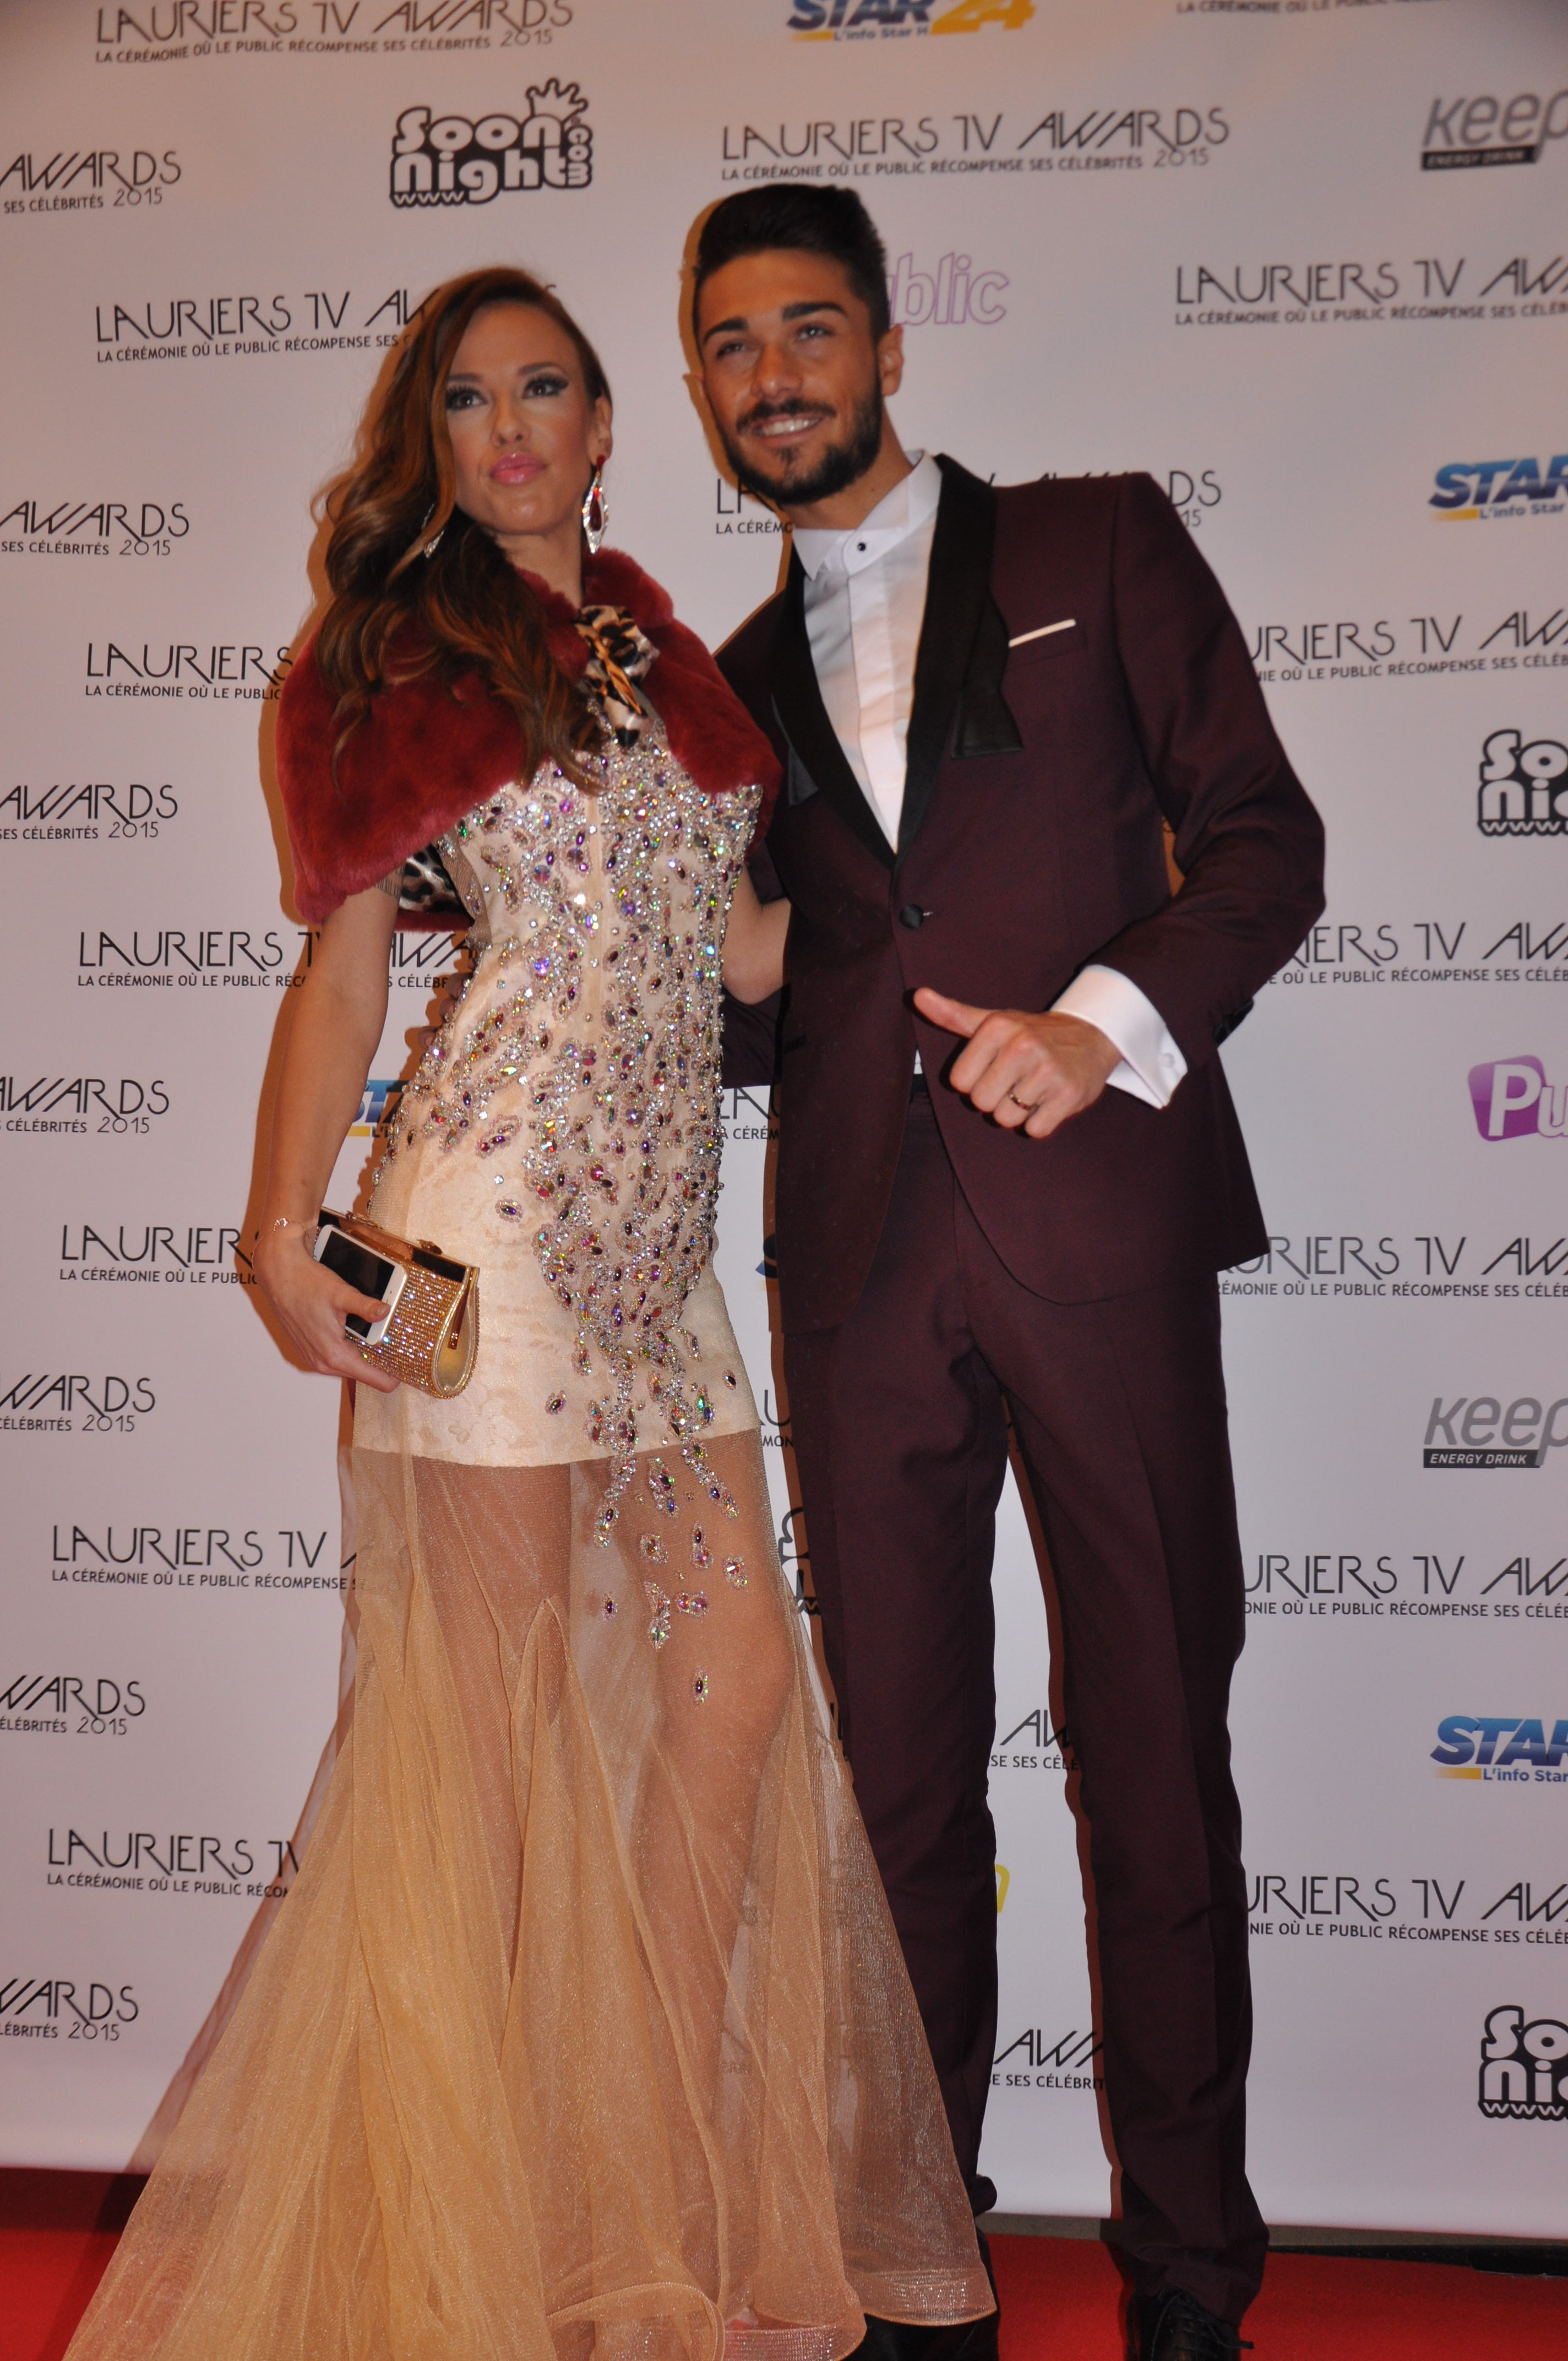 Vanessa Lawrens et Julien Guirado au Lauriers Tv Awards 2015. Crédit photo : Star24